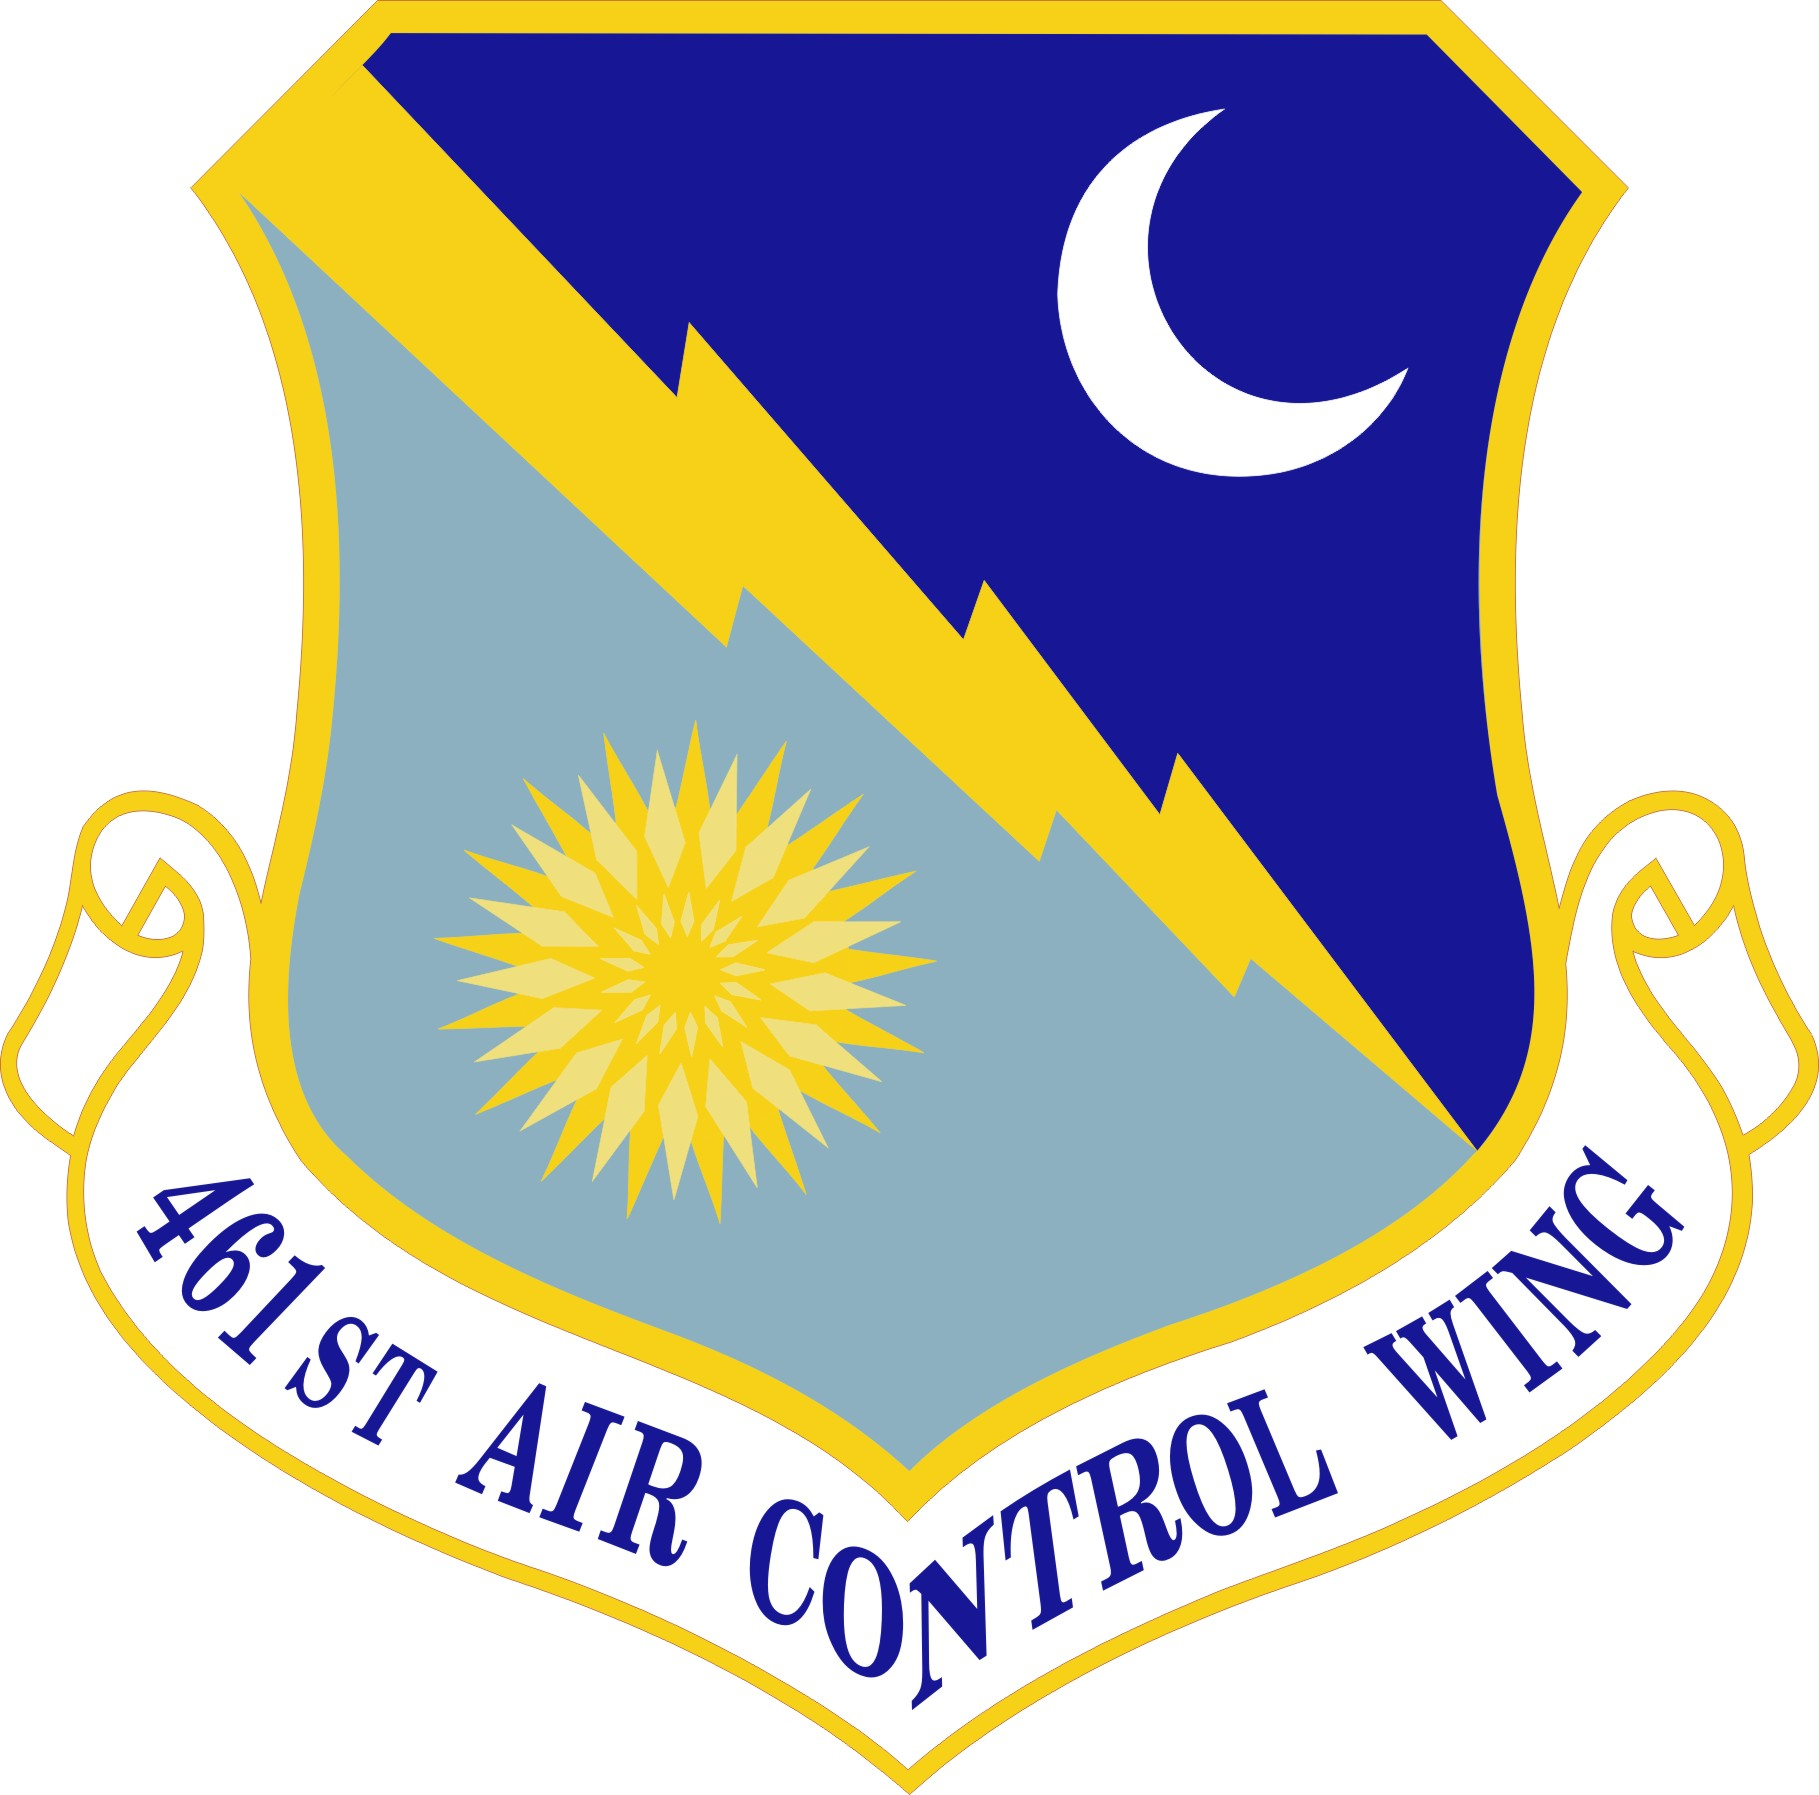 461 Air Control Wing (ACC) > Air Force Historical Research Agency